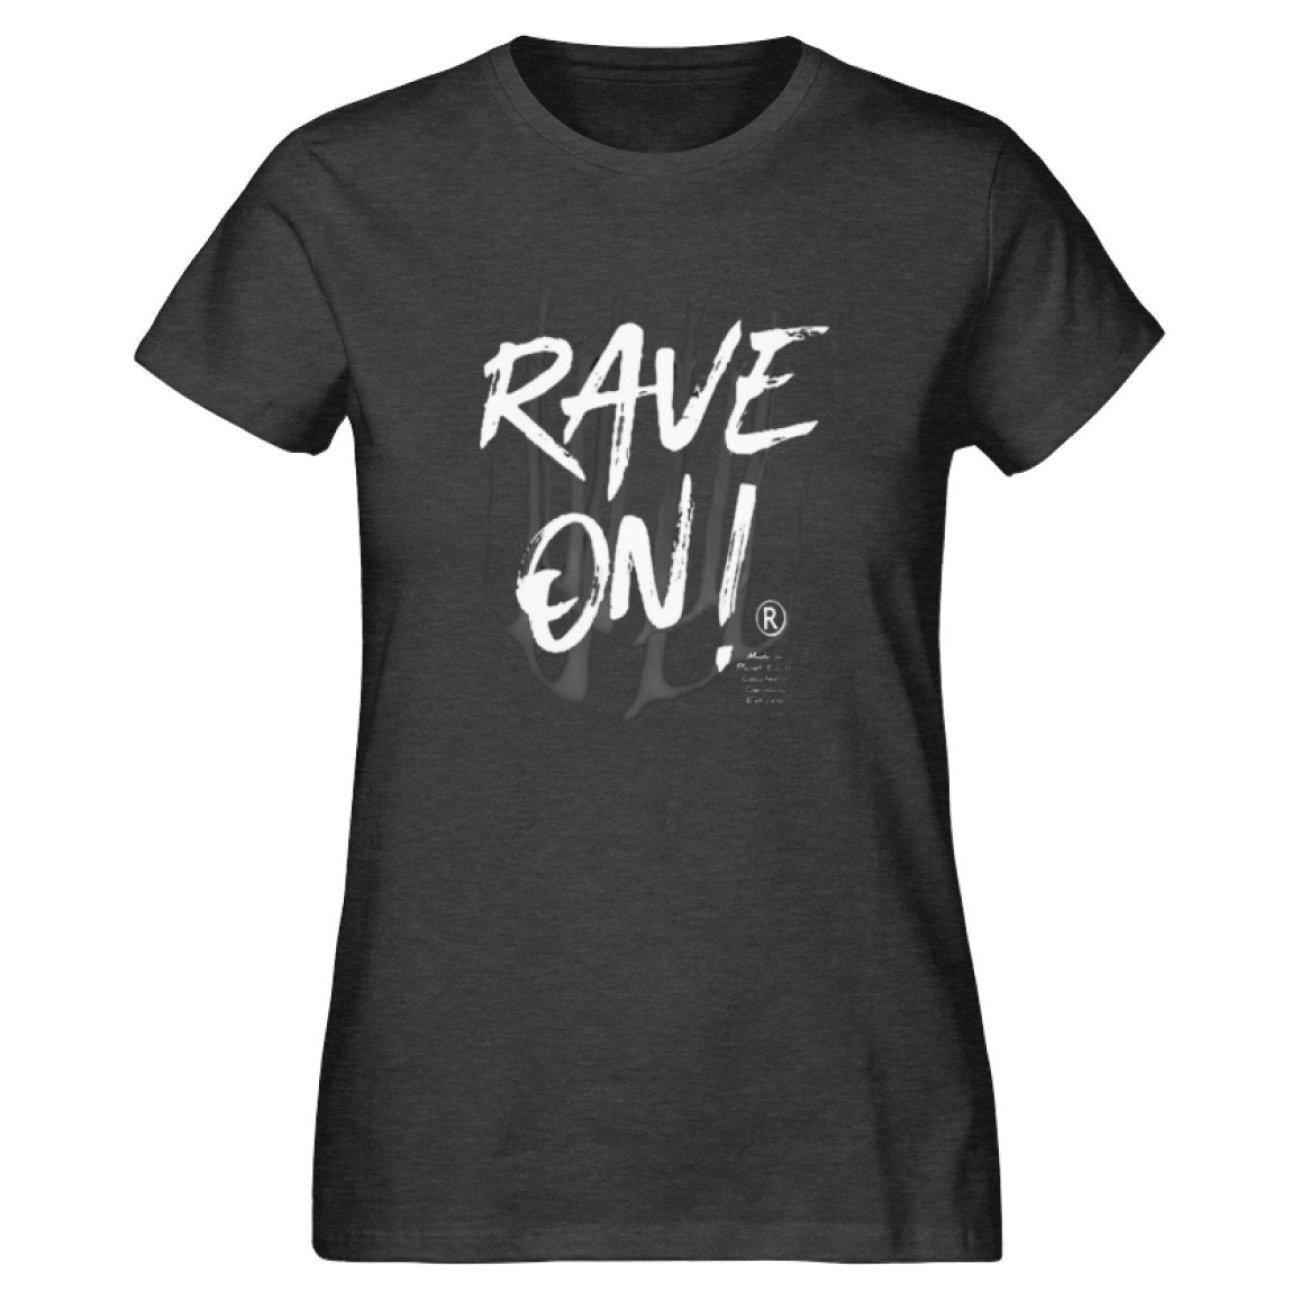 Rave On!® - Made On Planet Earth B2k20 - Damen Premium Organic Shirt-Damen Premium Organic Shirt ST/ST-Dark Heather Grey-M-Rave-On! I www.rave-on.shop I Deine Rave & Techno Szene Shop I brand, Design - Rave On!® - Made On Planet Earth B2k20, marke, on, rave, raver, techno - Sexy Festival Streetwear , Clubwear & Raver Style